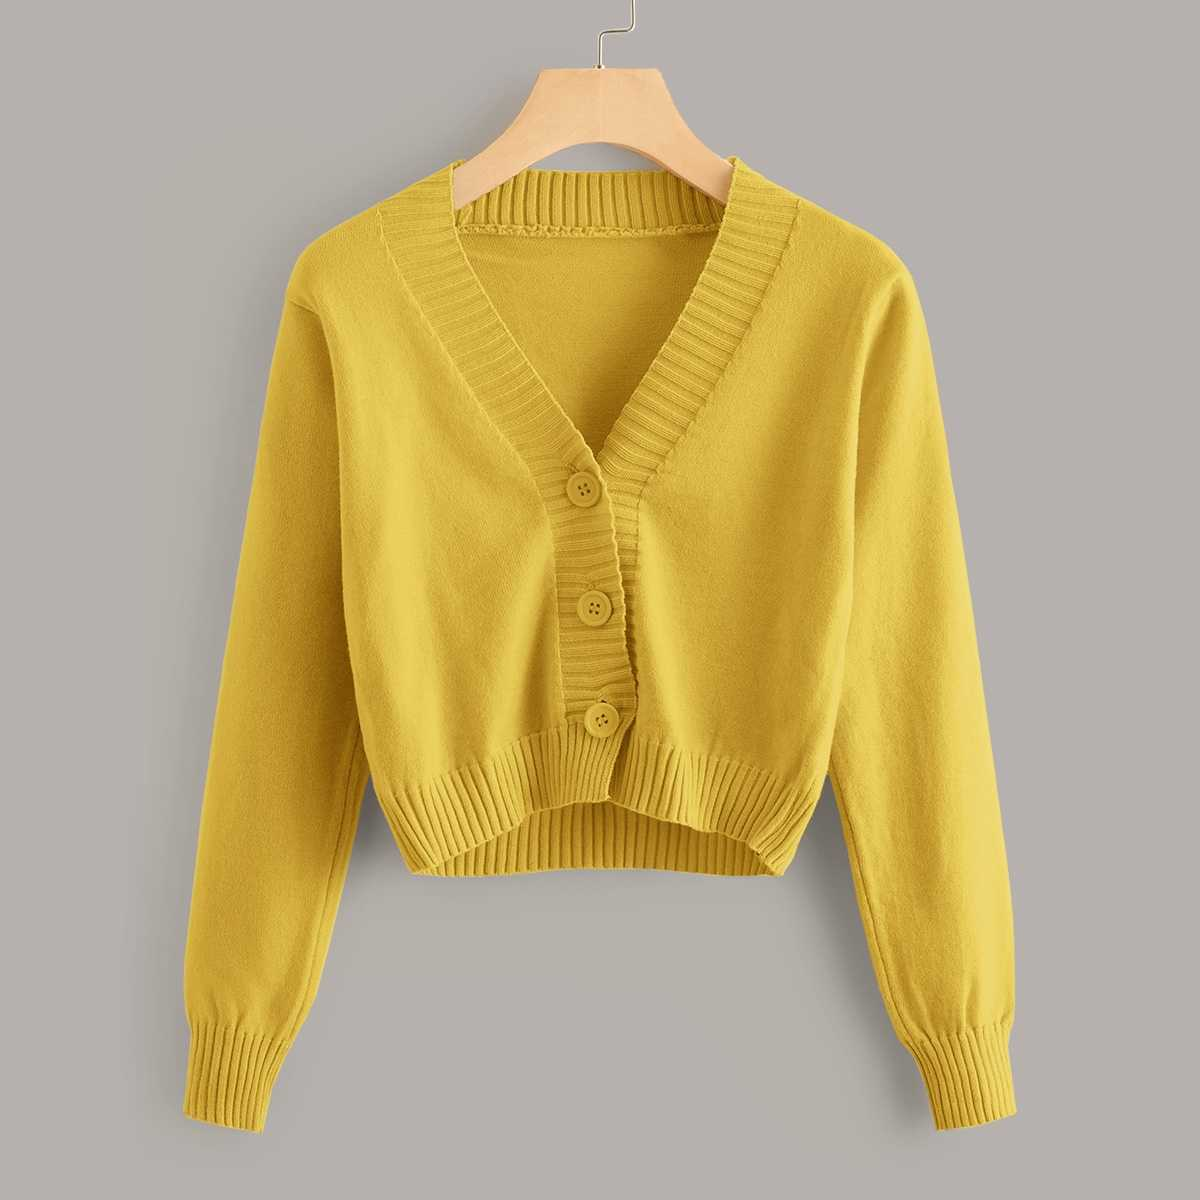 Solid Button Through Crop Cardigan in Yellow by ROMWE on GOOFASH